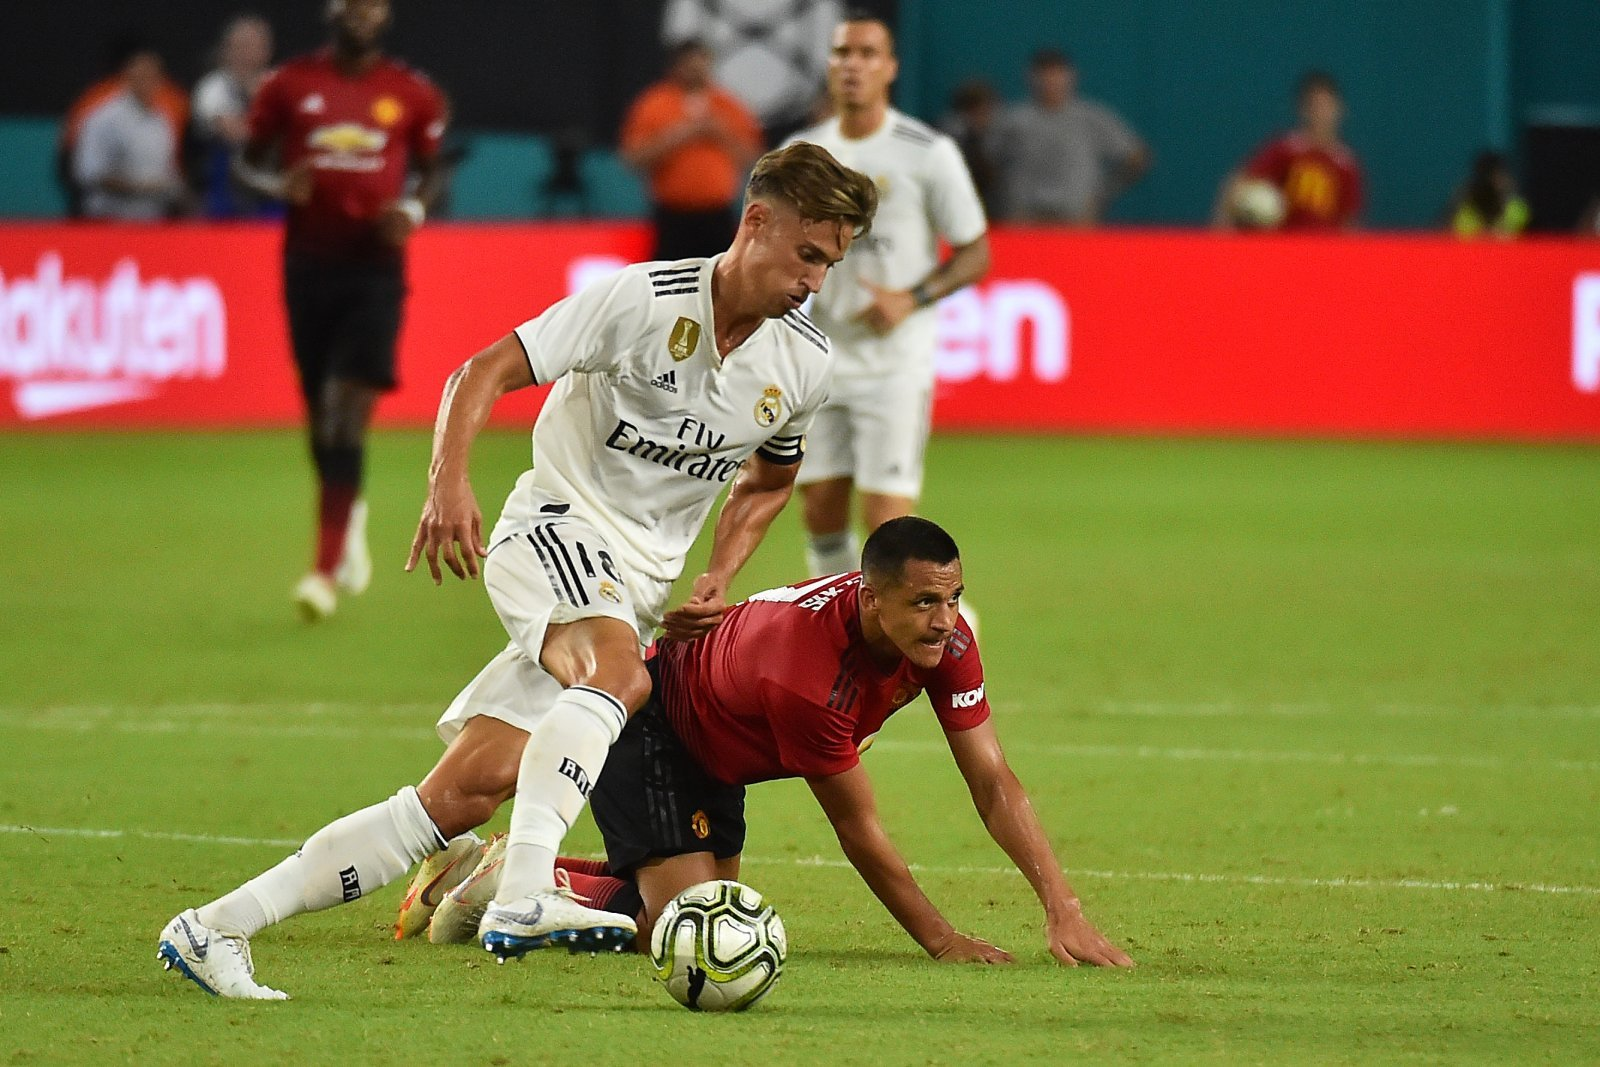 Tottenham should be looking at Marcos Llorente to reinforce their midfield